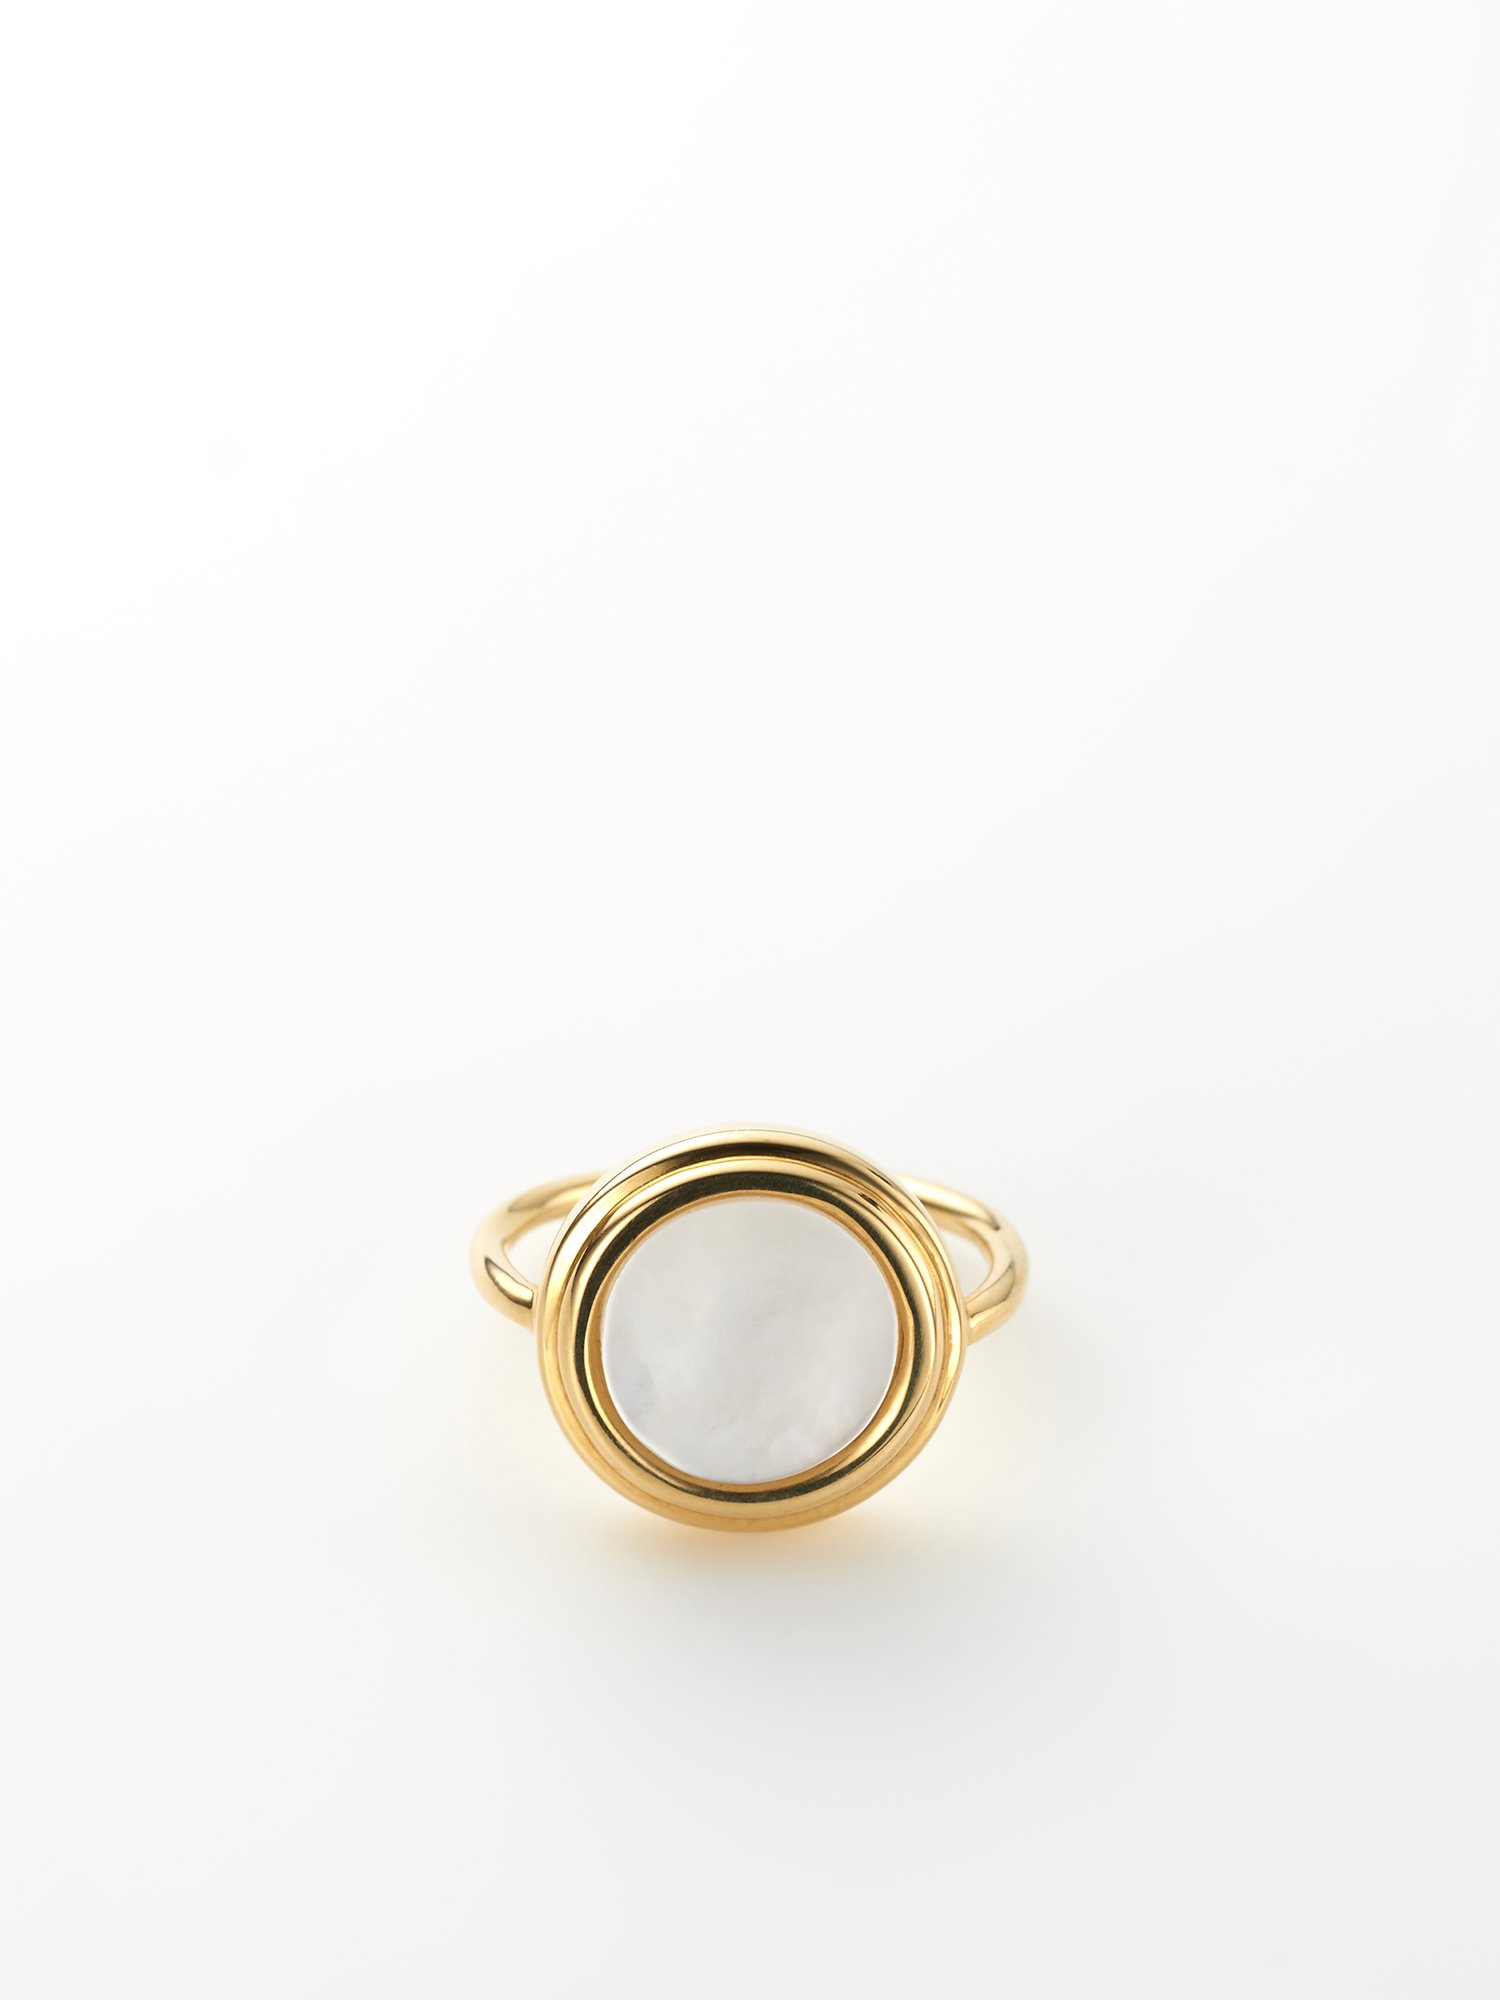 SOPHISTICATED VINTAGE / Planet ring / Mother of pearl